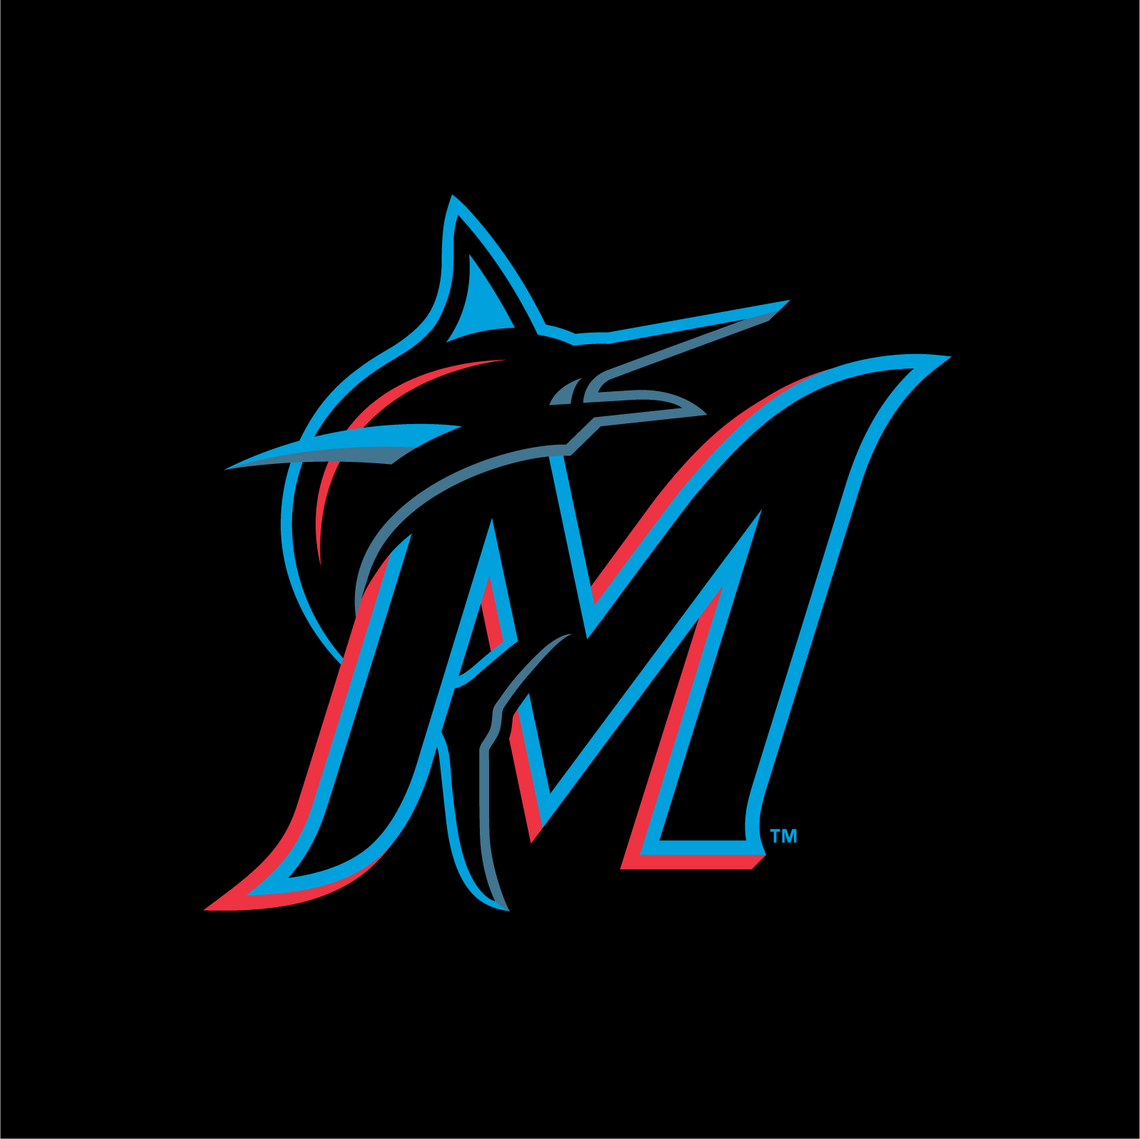 Jeter S Group Unveils New Look Marlins Logo And Colors Following Marketing Campaign Miami Marlins Marlins Miami